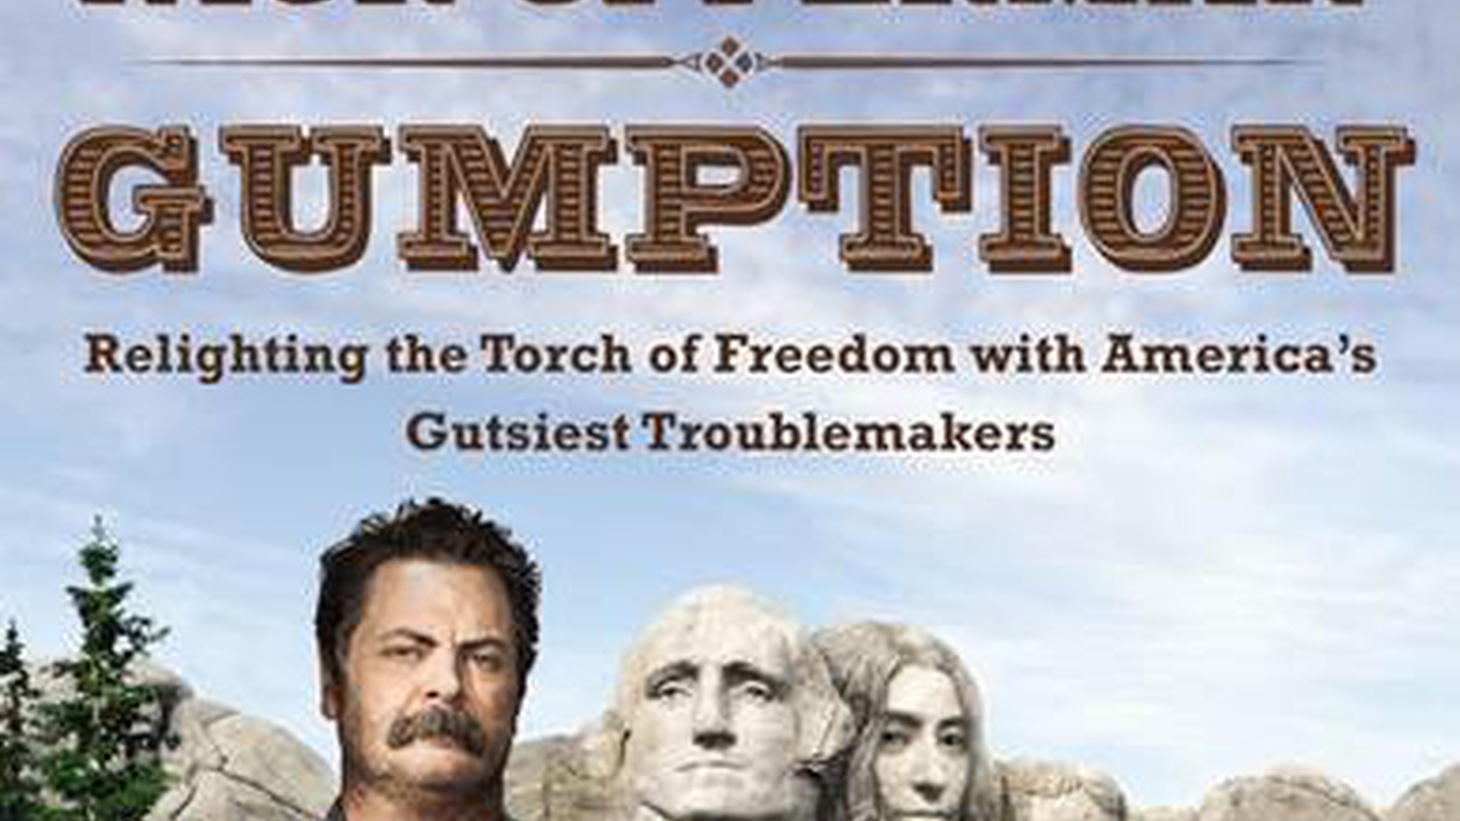 Actor/humorist/author/woodworker Nick Offerman talks about his new book, Gumption: Relighting the Torch of Freedom with America's Gutsiest Troublemakers.